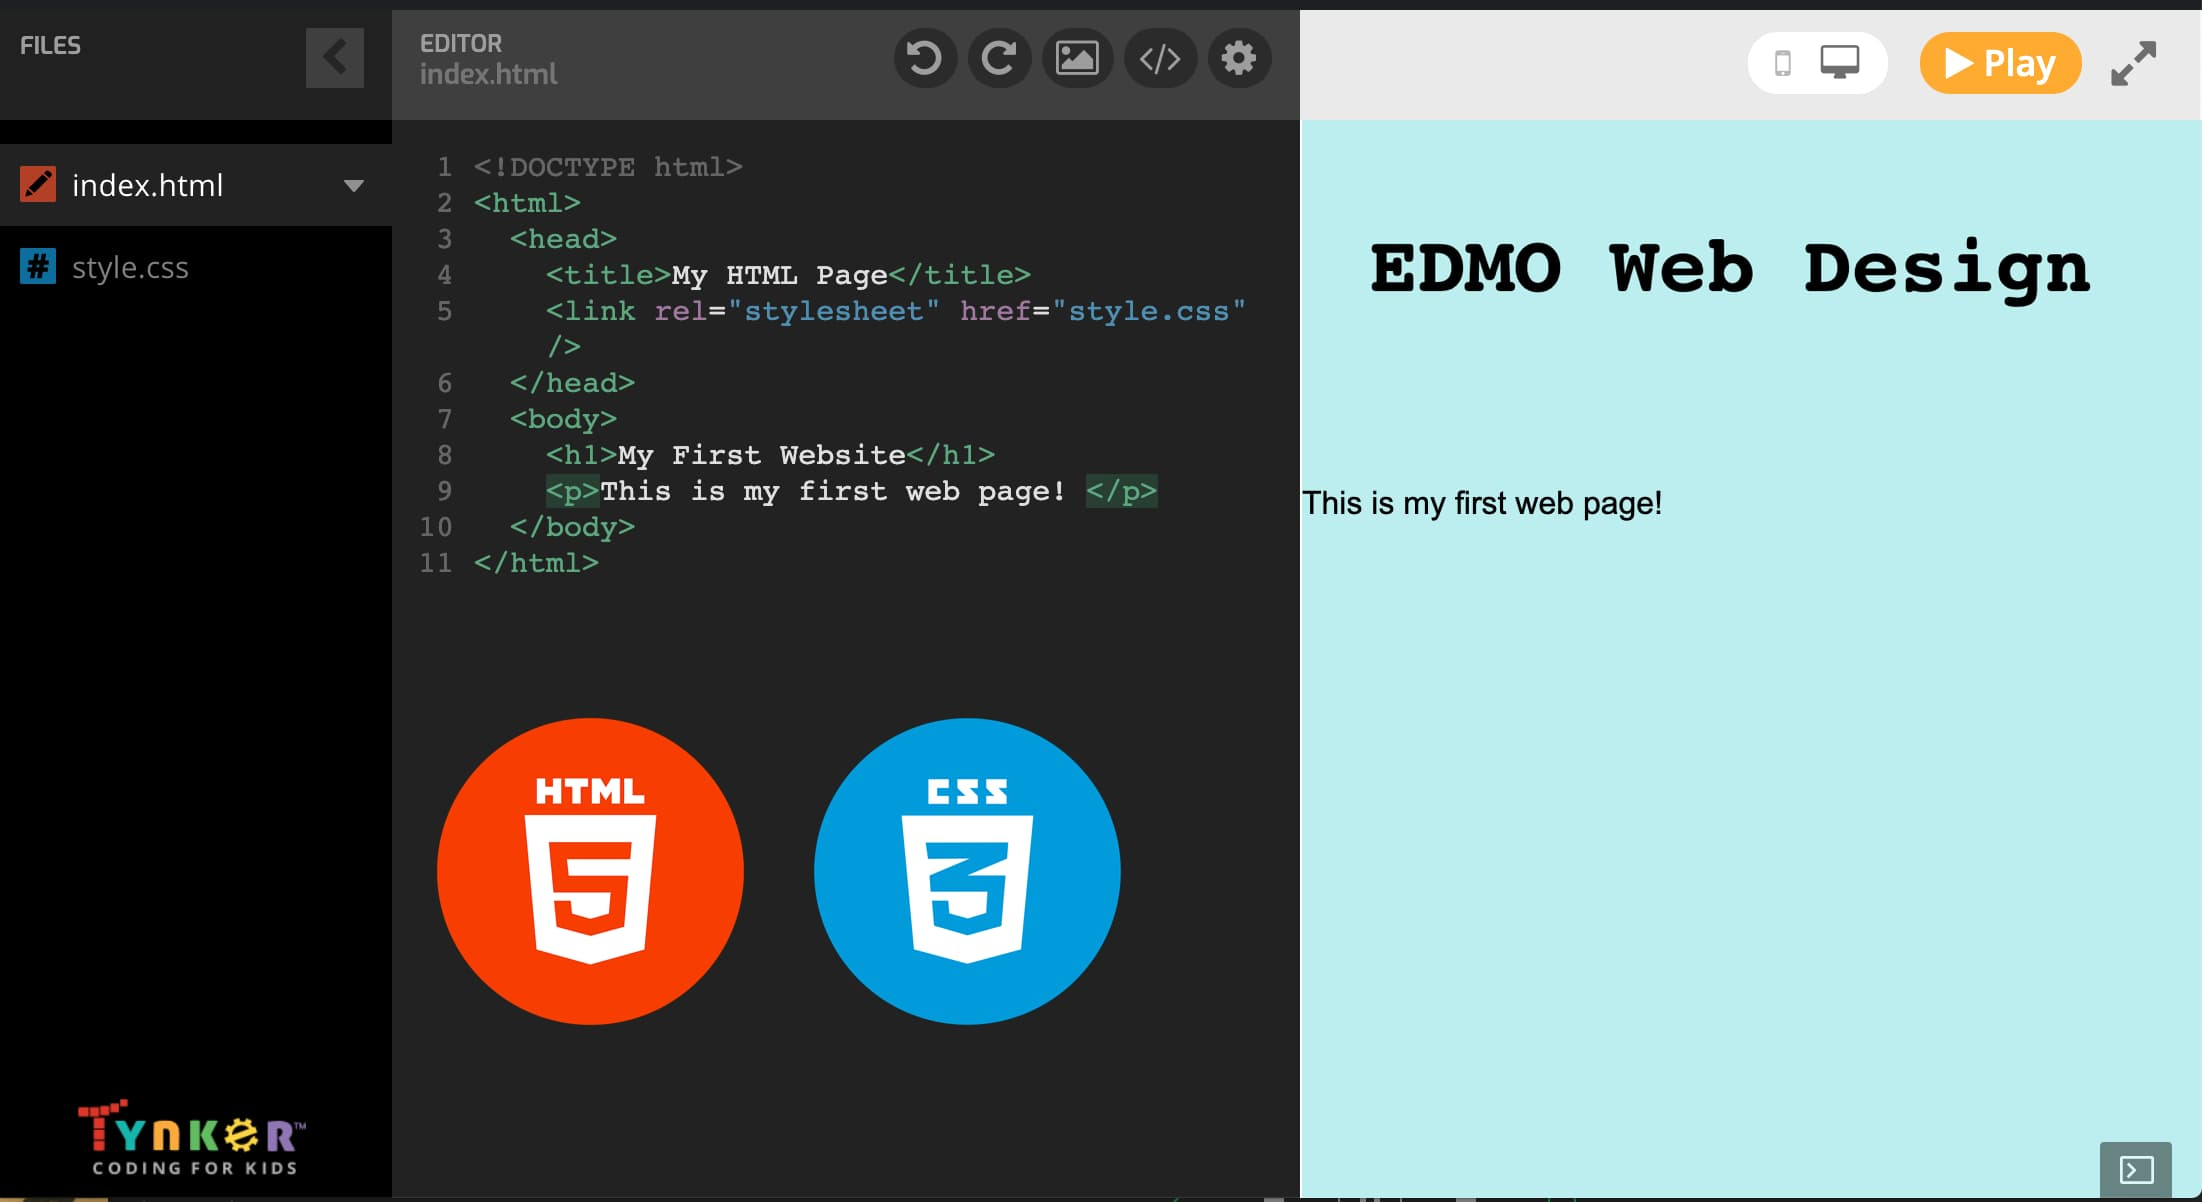 Learn the coding languages HTML and CSS and build your very own website!